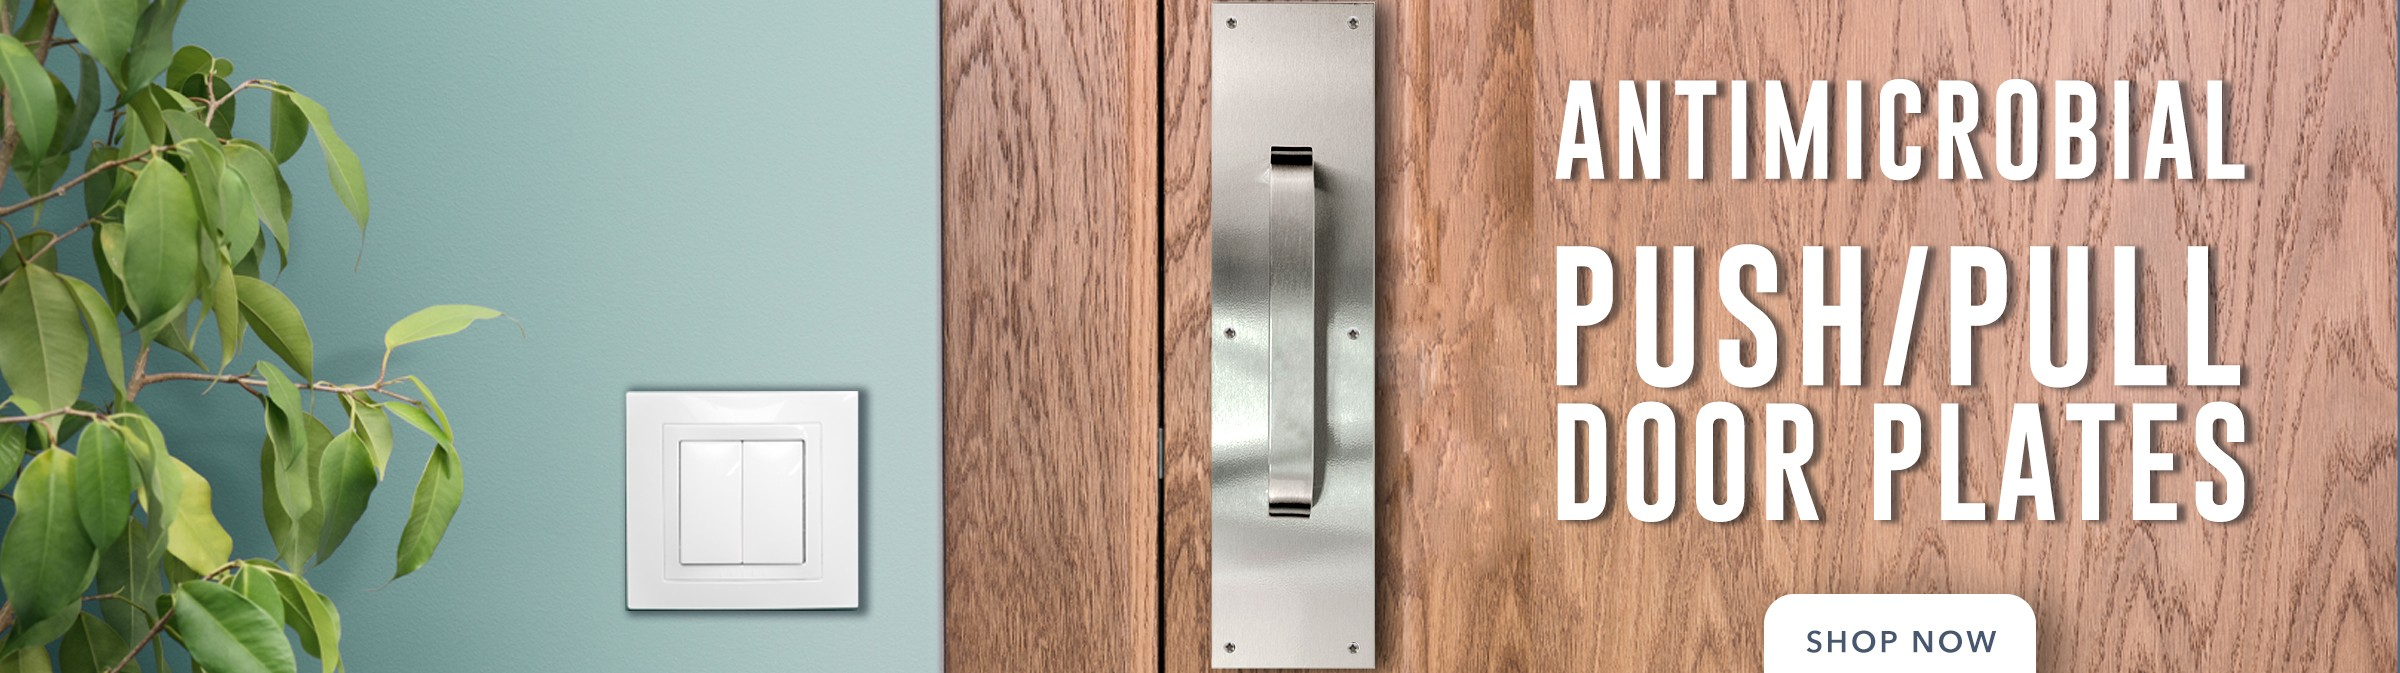 Antimicrobial Push/Pull Plates